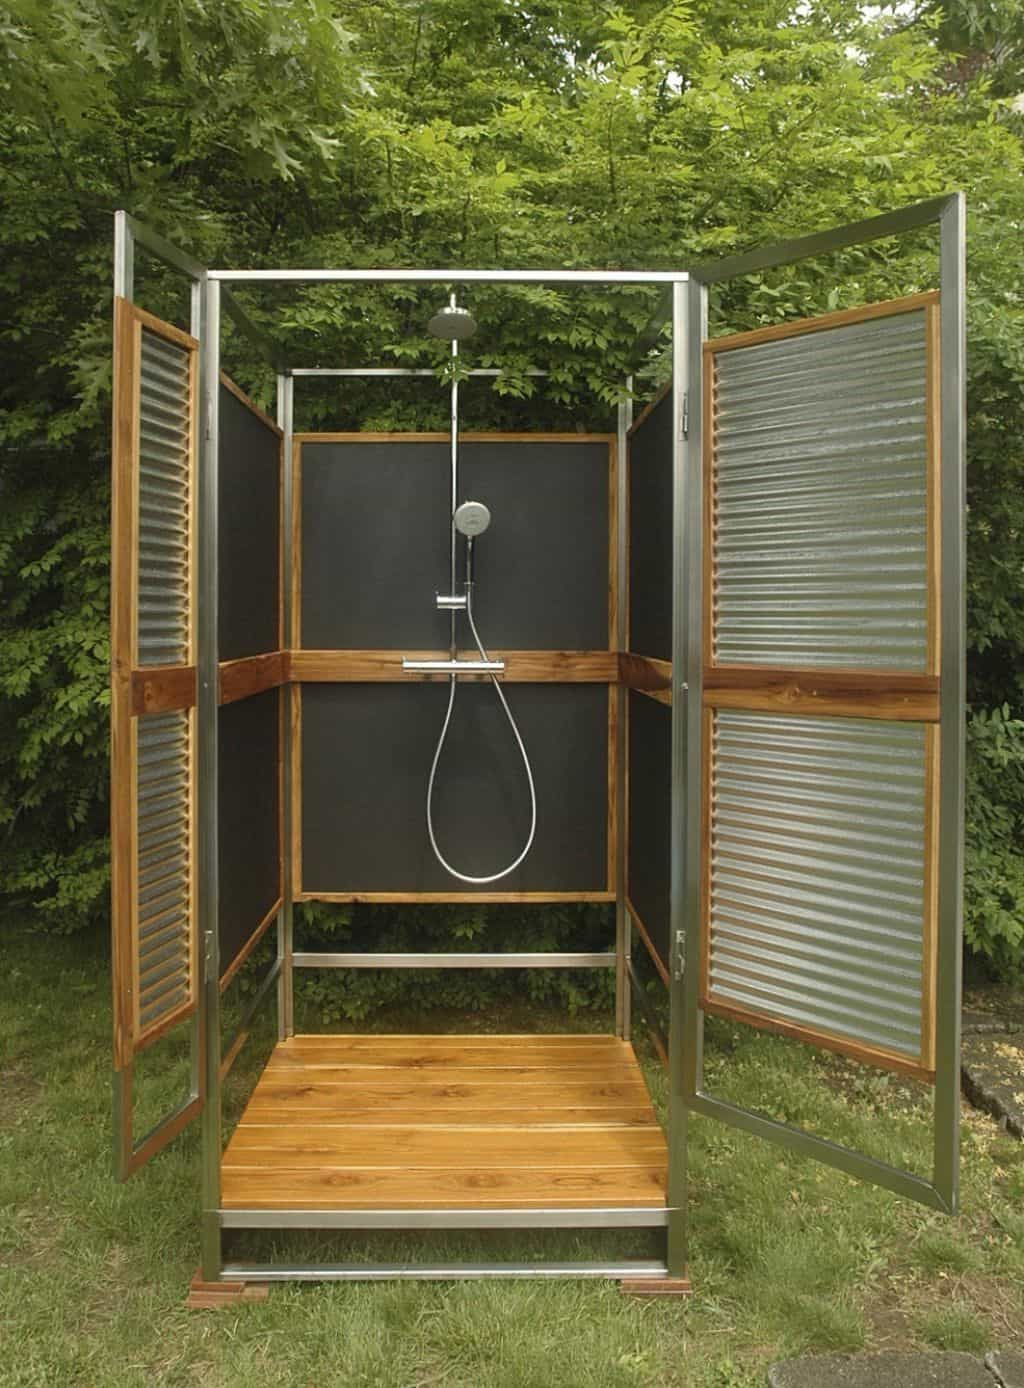 Outdoor shower enclosure with rainfall shower head outdoor shower enclosures for amazing additions